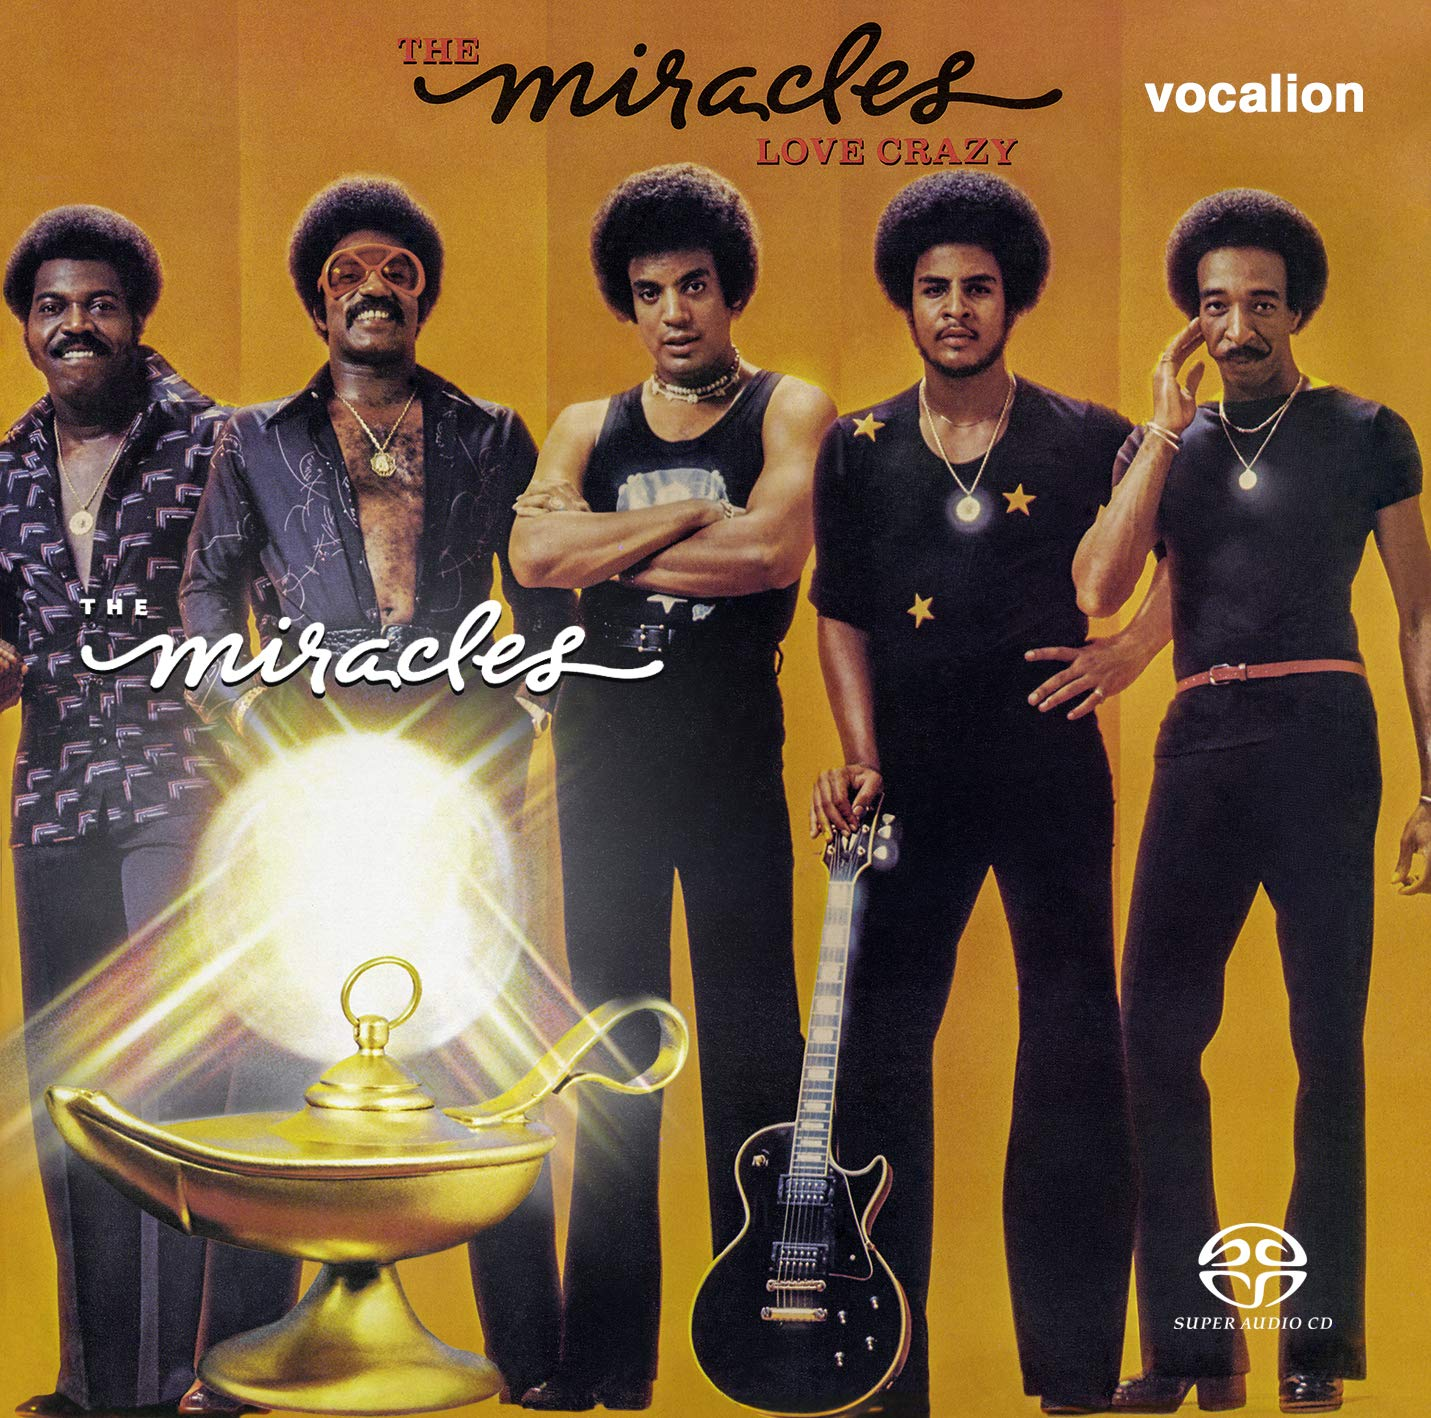 The Miracles - Love Crazy & Miracles [SACD Hybrid Multi-channel / Stereo]